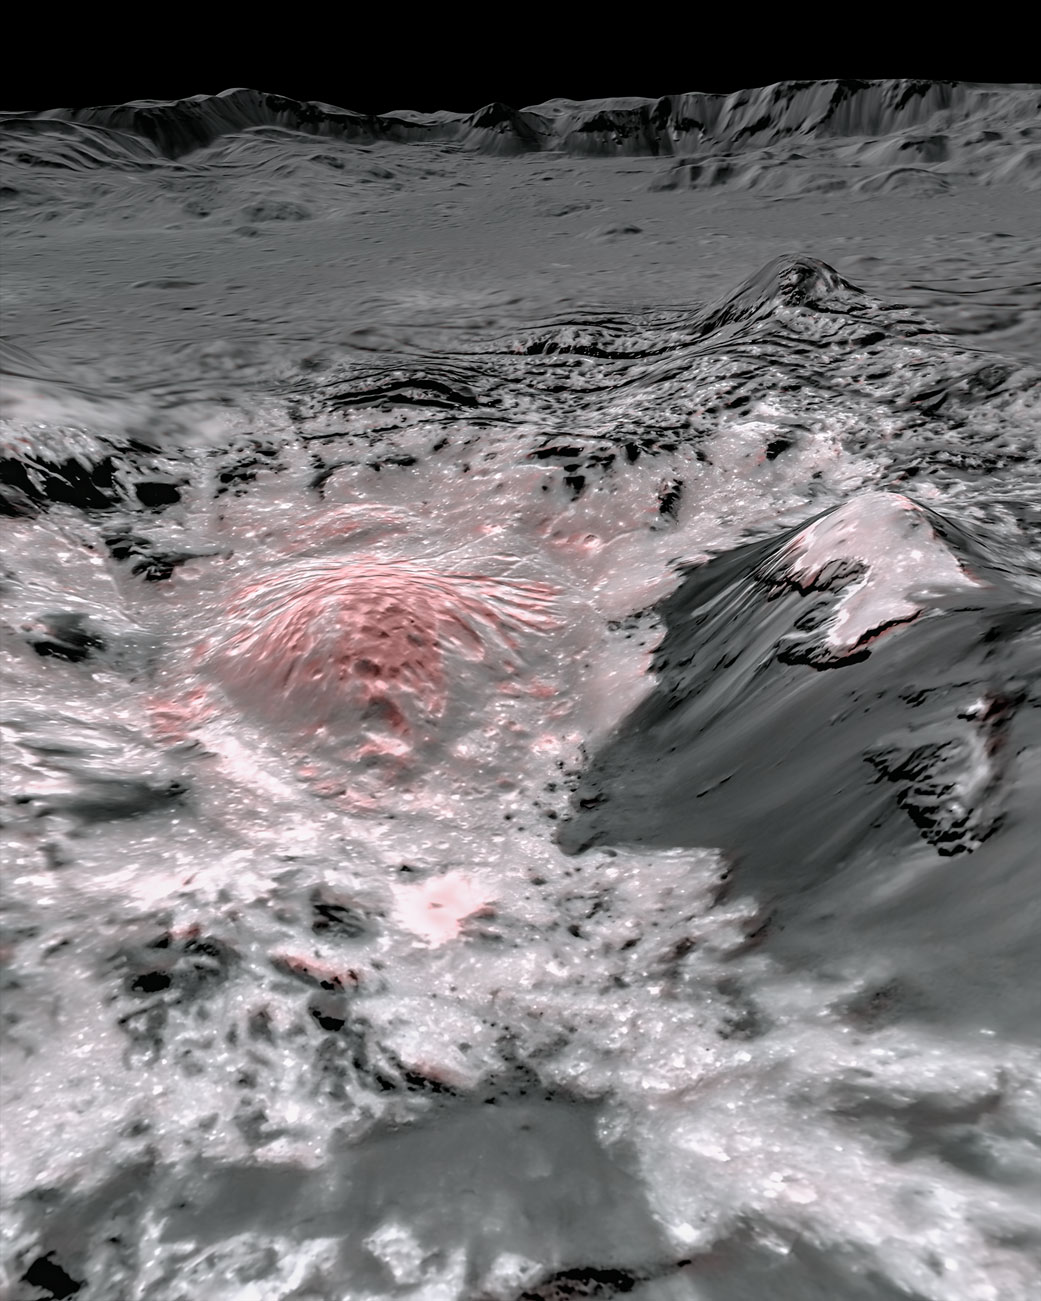 NASA Probe Discovers 'Salty Water' Beneath Surface of Dwarf Planet - Voice of America